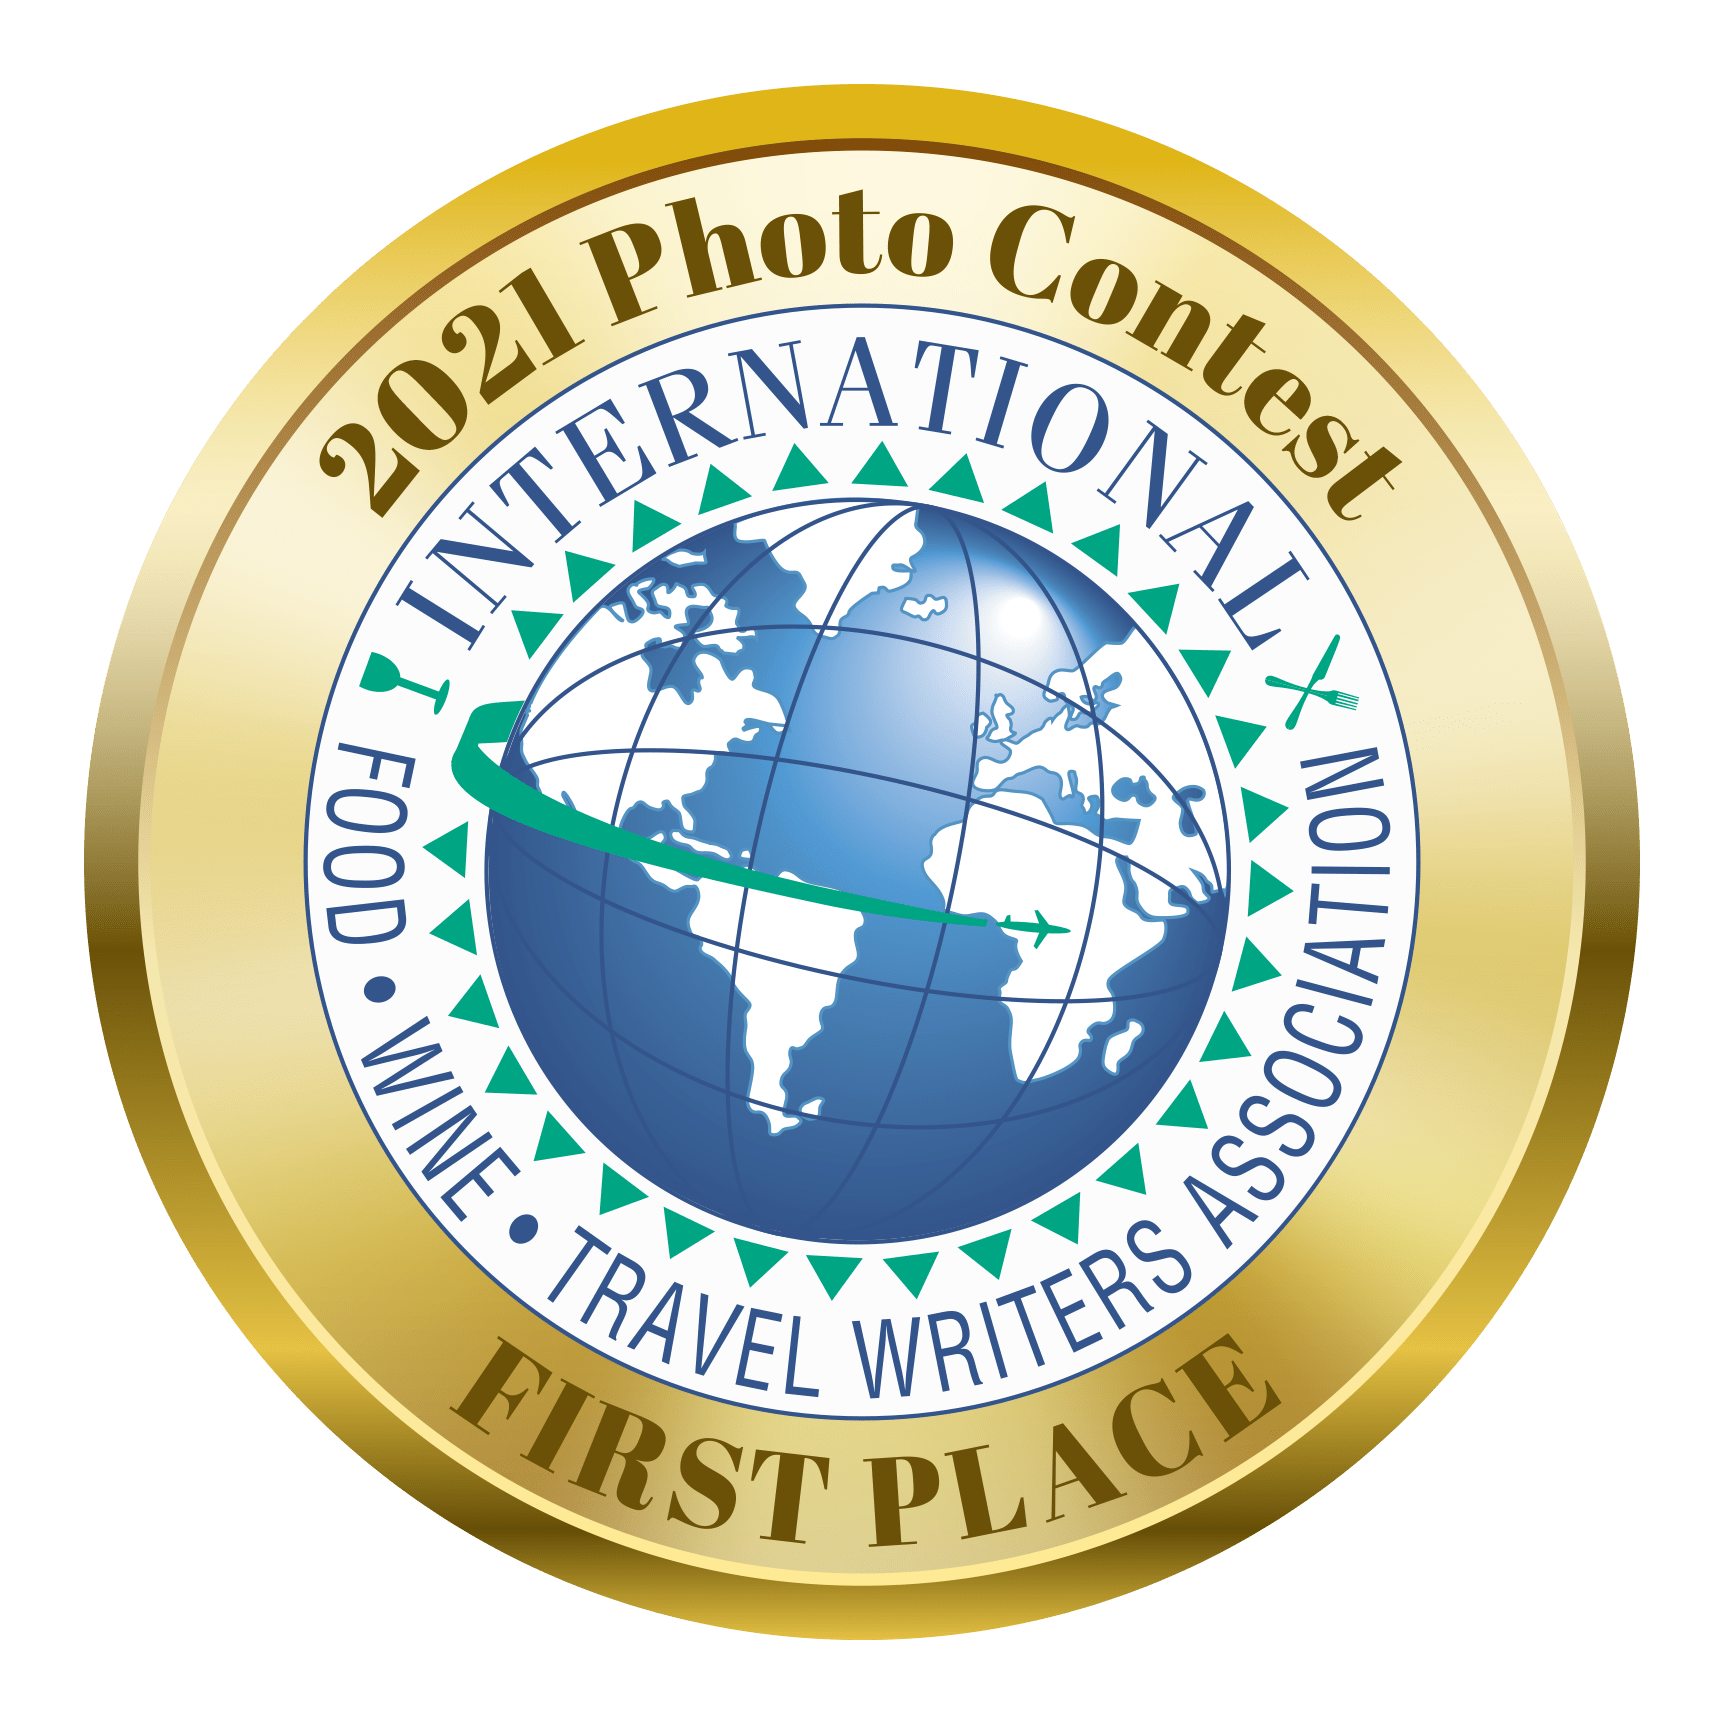 IFWTWA First Place Gold Medal